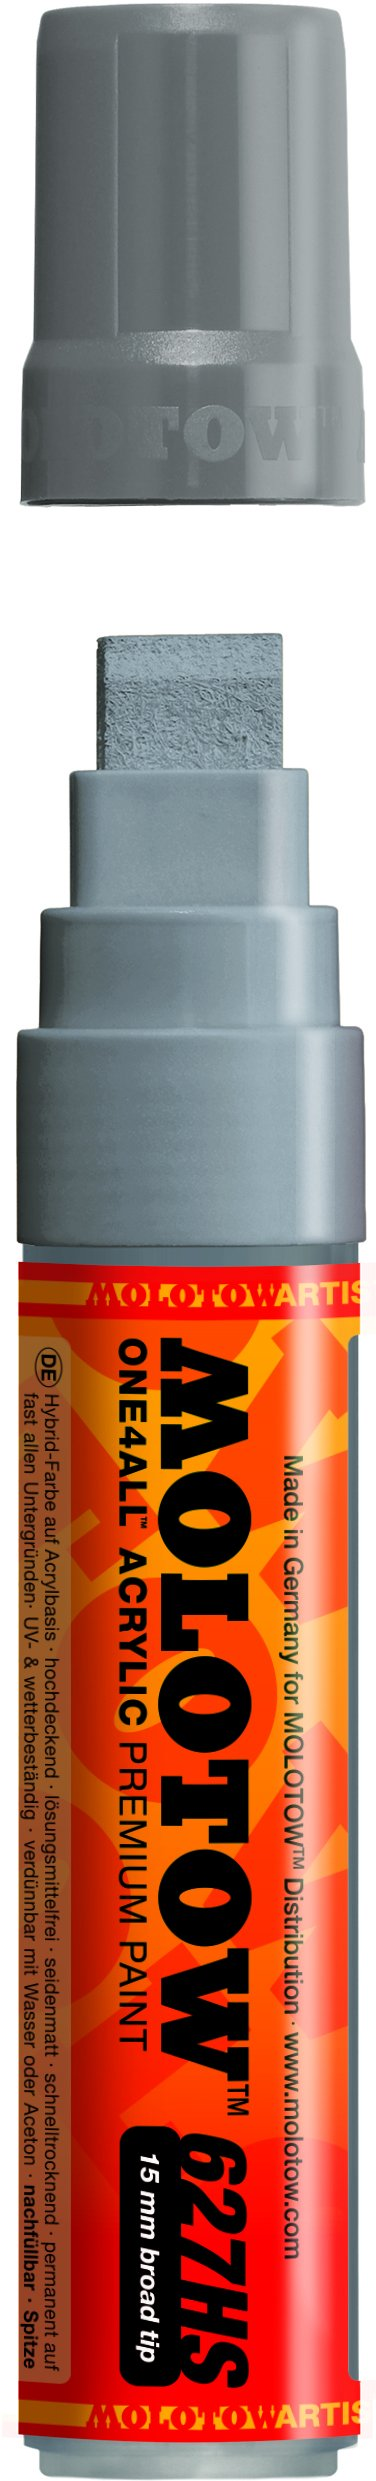 Molotow ONE4ALL Acrylic Paint Marker, 15mm, Cool Grey Pastel, 1 Each (627.218) (Color: 203 Cool Grey, Tamaño: Paint Marker - 15mm)